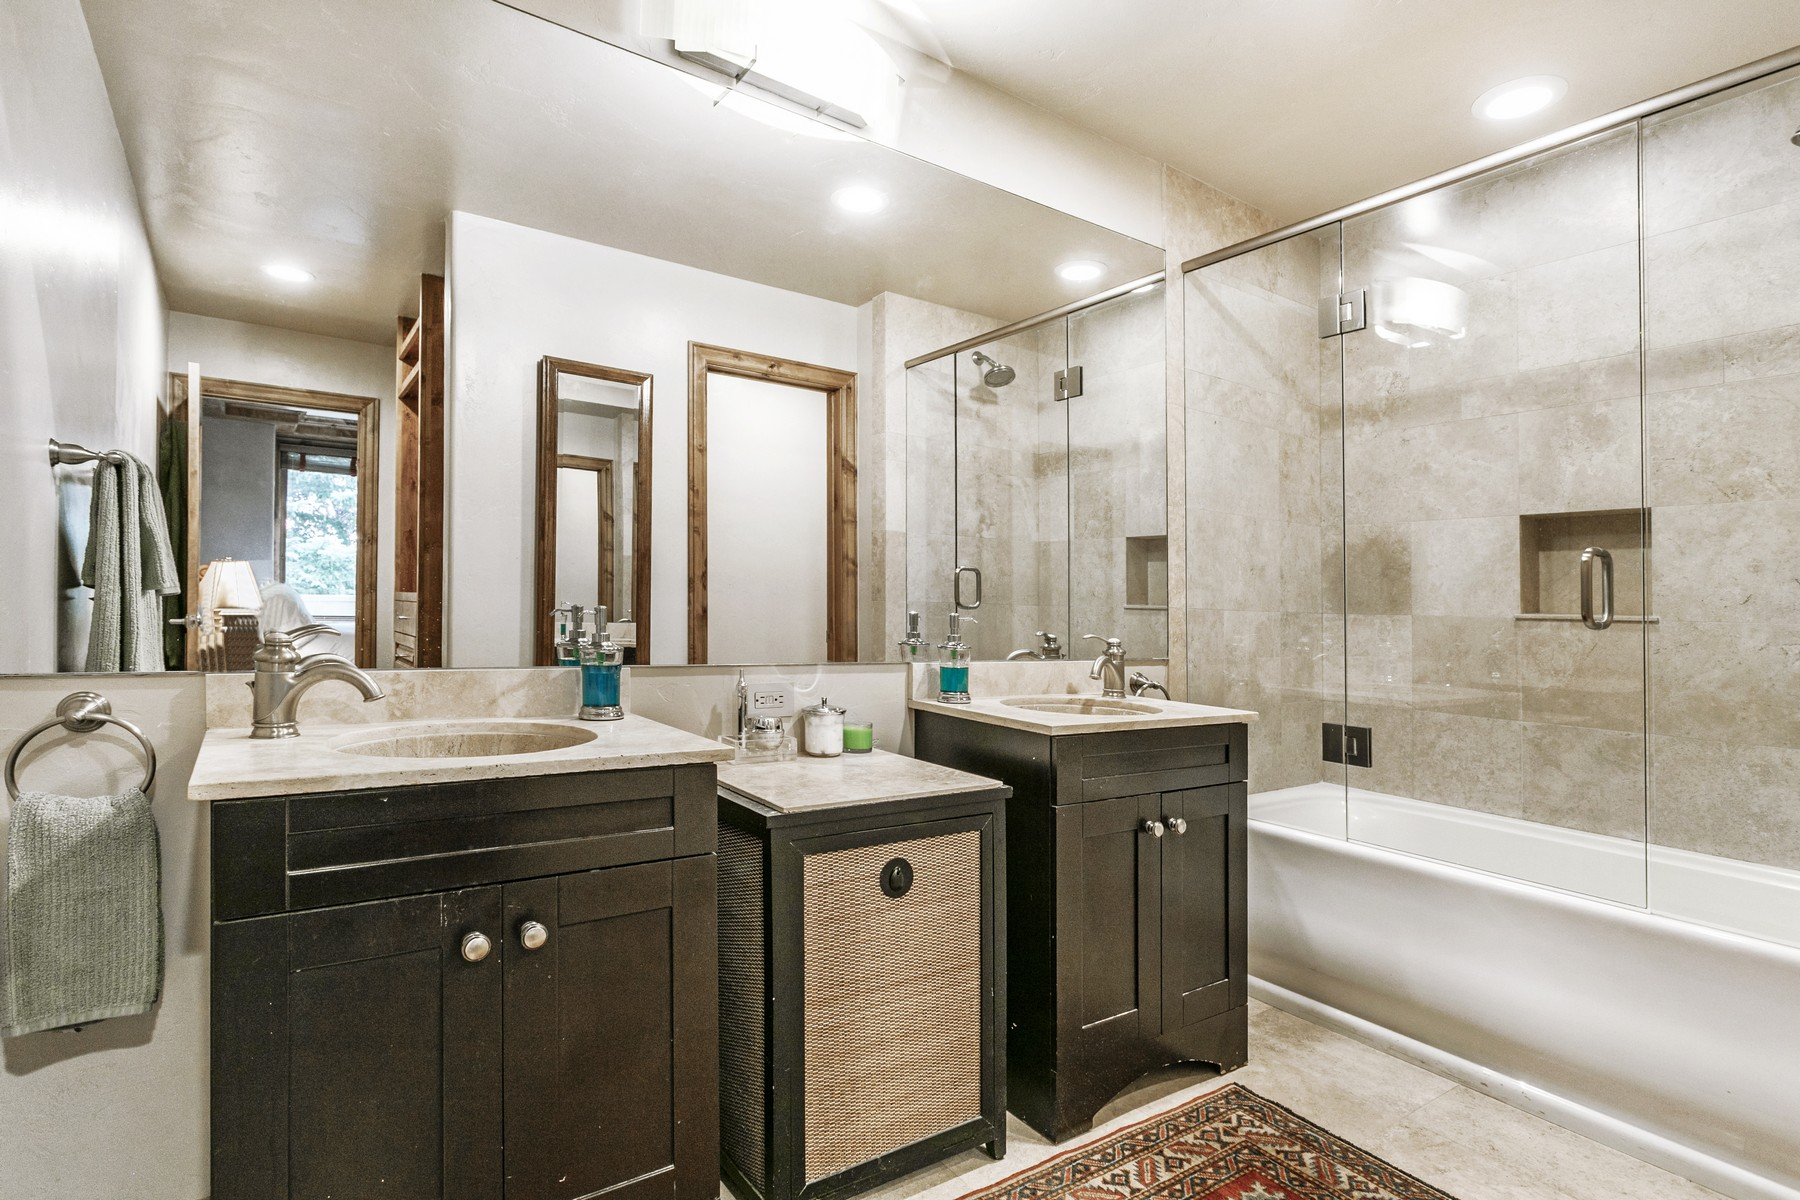 Additional photo for property listing at The Seasons at Arrowhead #211 600 Sawatch Drive #211 Edwards, Colorado 81632 United States